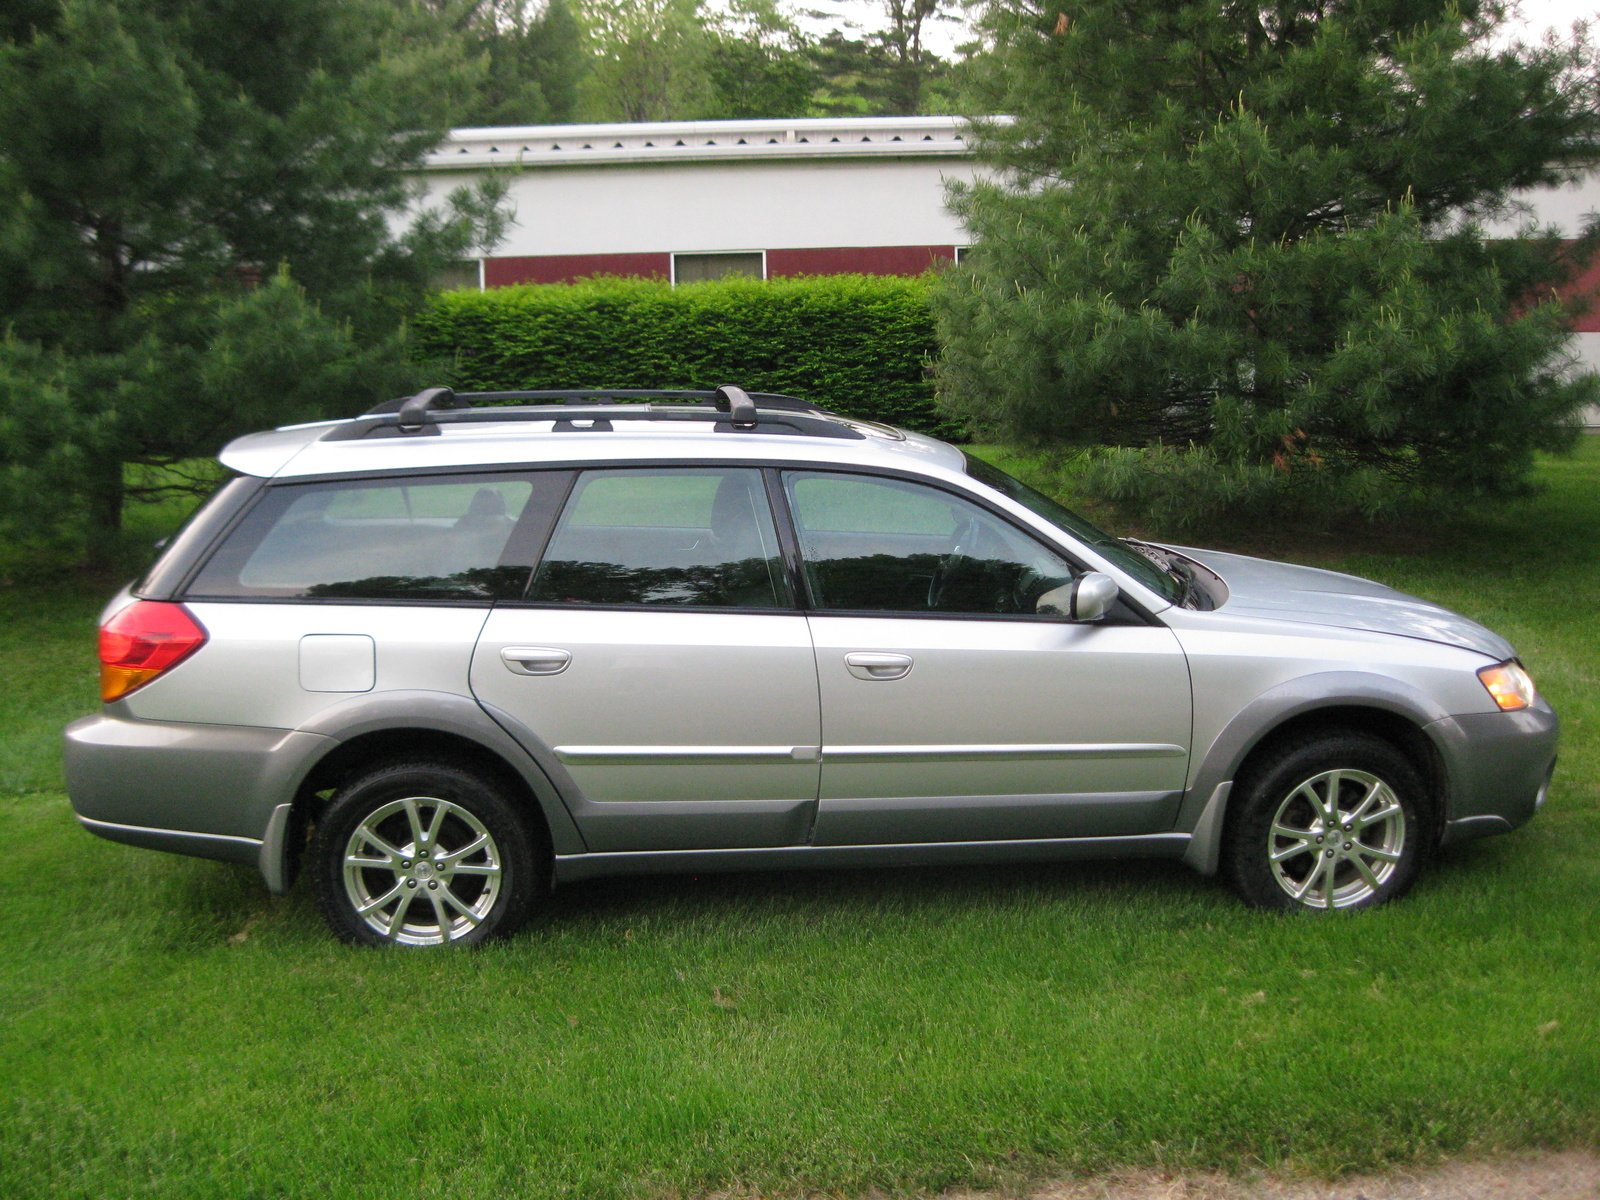 Subaru Outback Questions - price to replace a head gasket - CarGurus